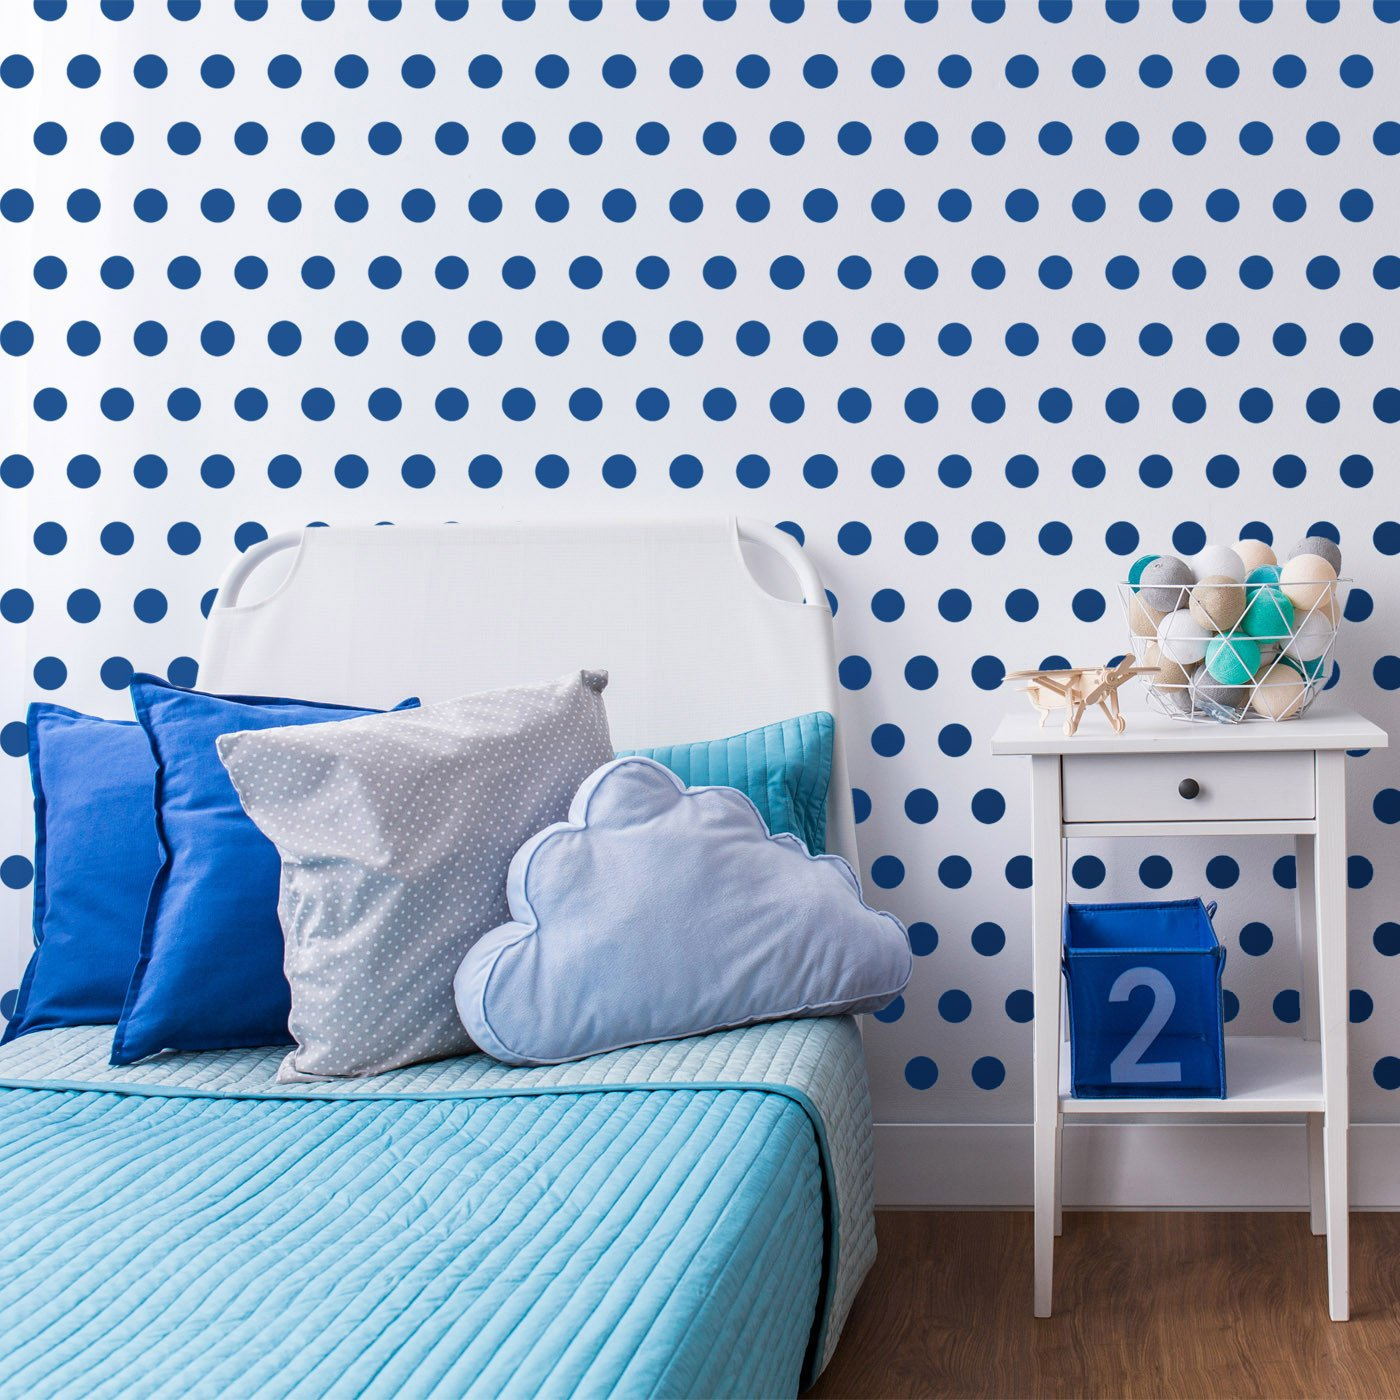 Small Polka Dot Seamless Pattern Stencil in teen room